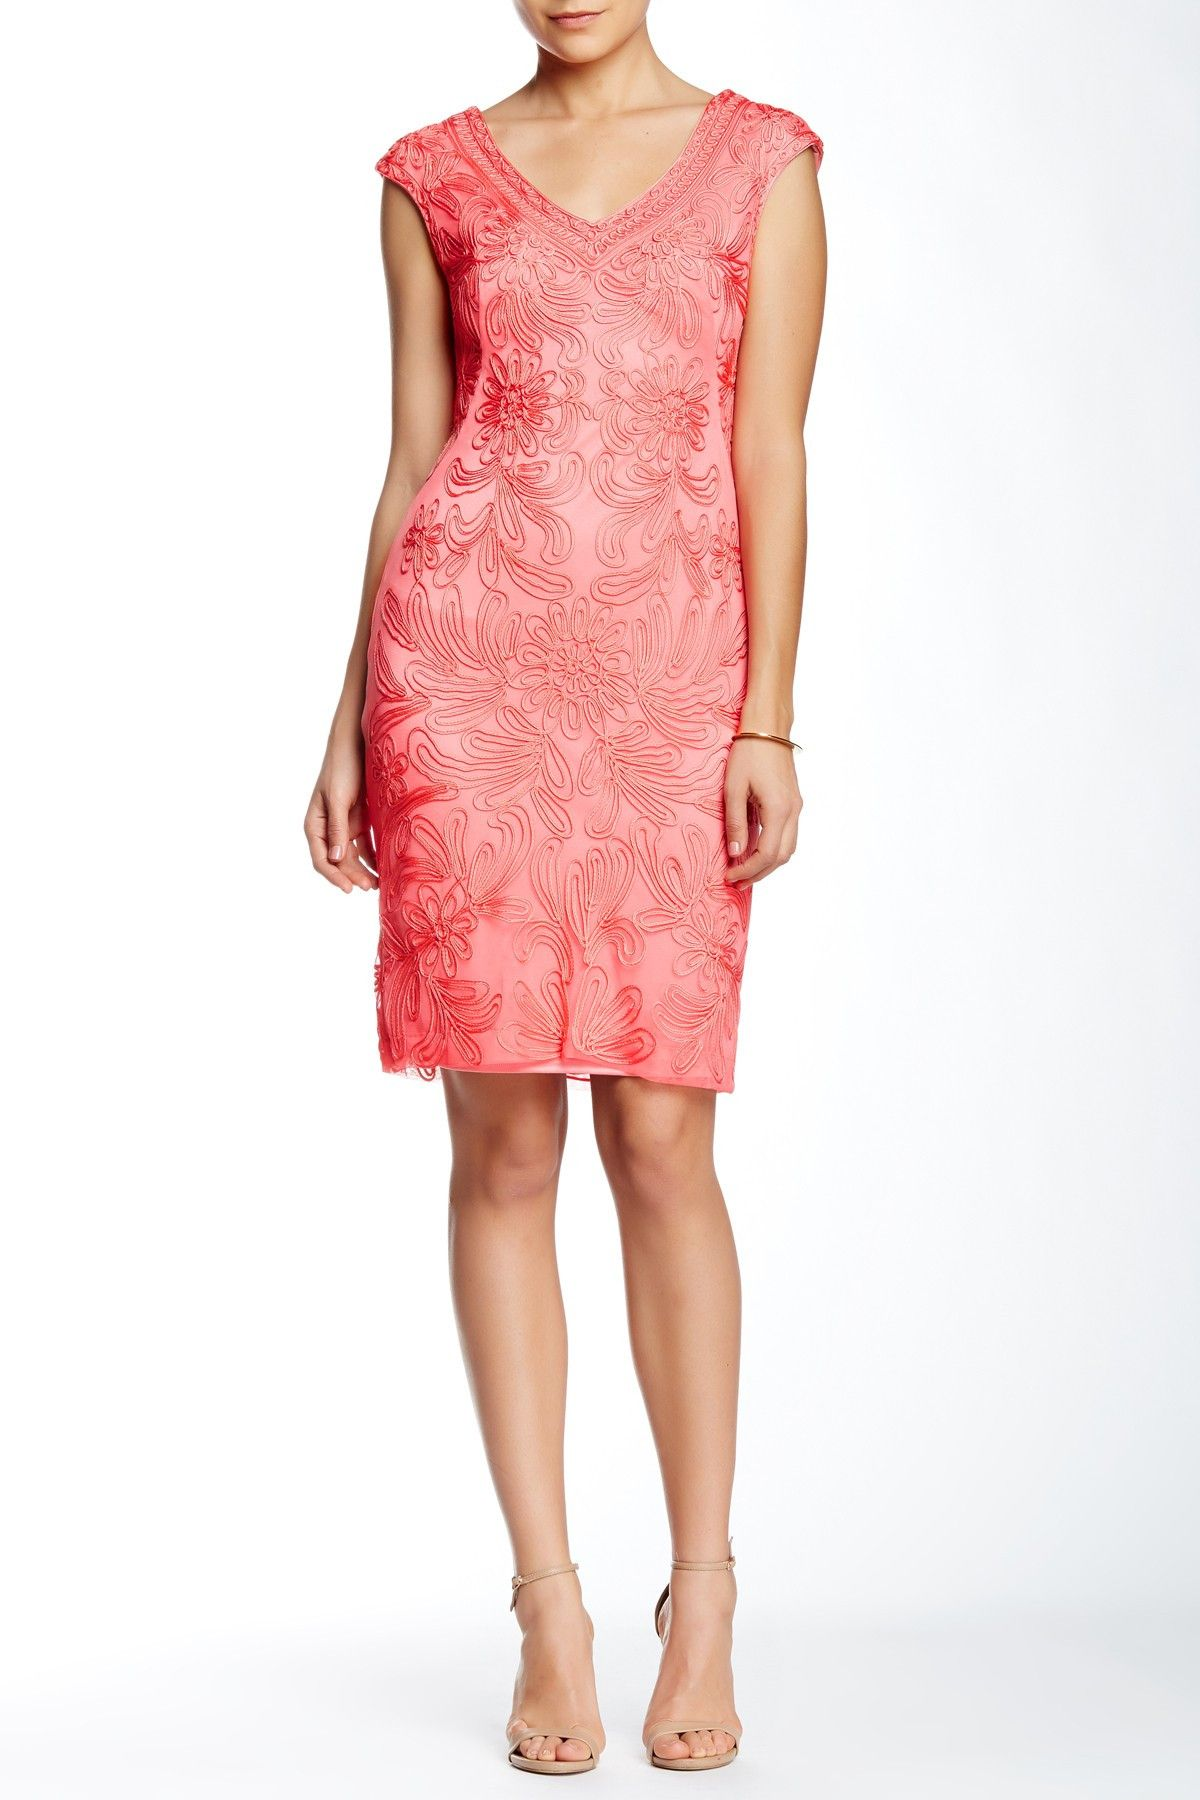 I love this chic silhouette color for a bridesmaids dress 109 i love this chic silhouette color for a bridesmaids dress 109 on sale and available in navy blue too nordstrom rack does free shipping over 100 ombrellifo Gallery